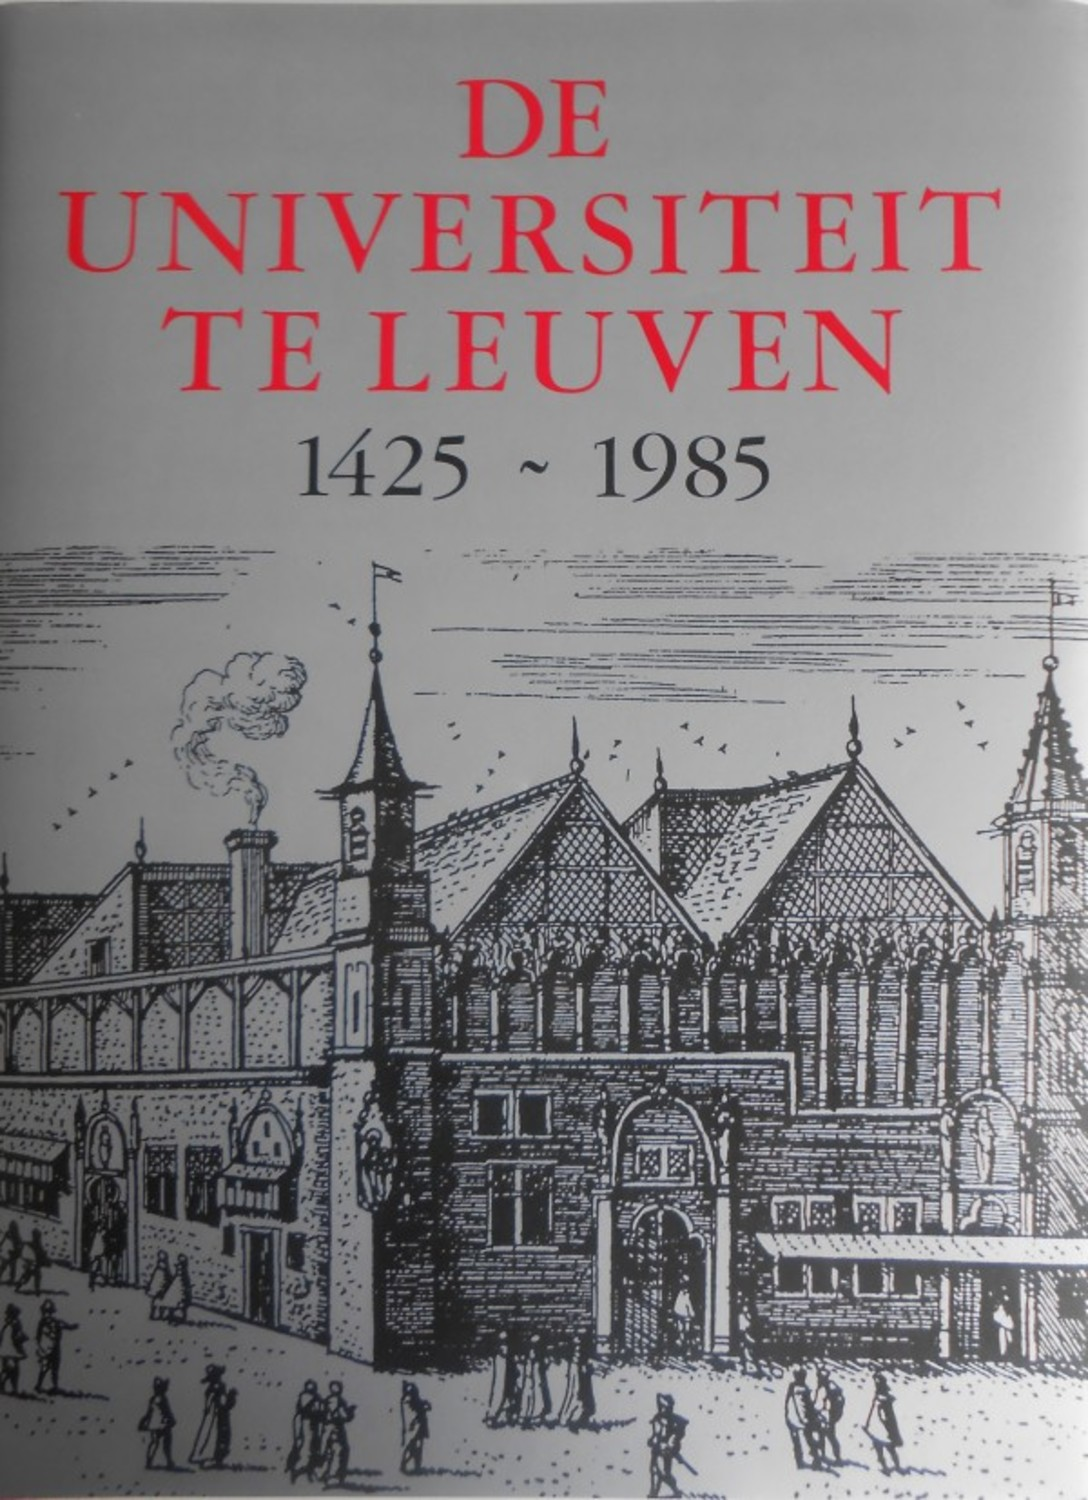 De Universiteit te Leuven 1425-1985